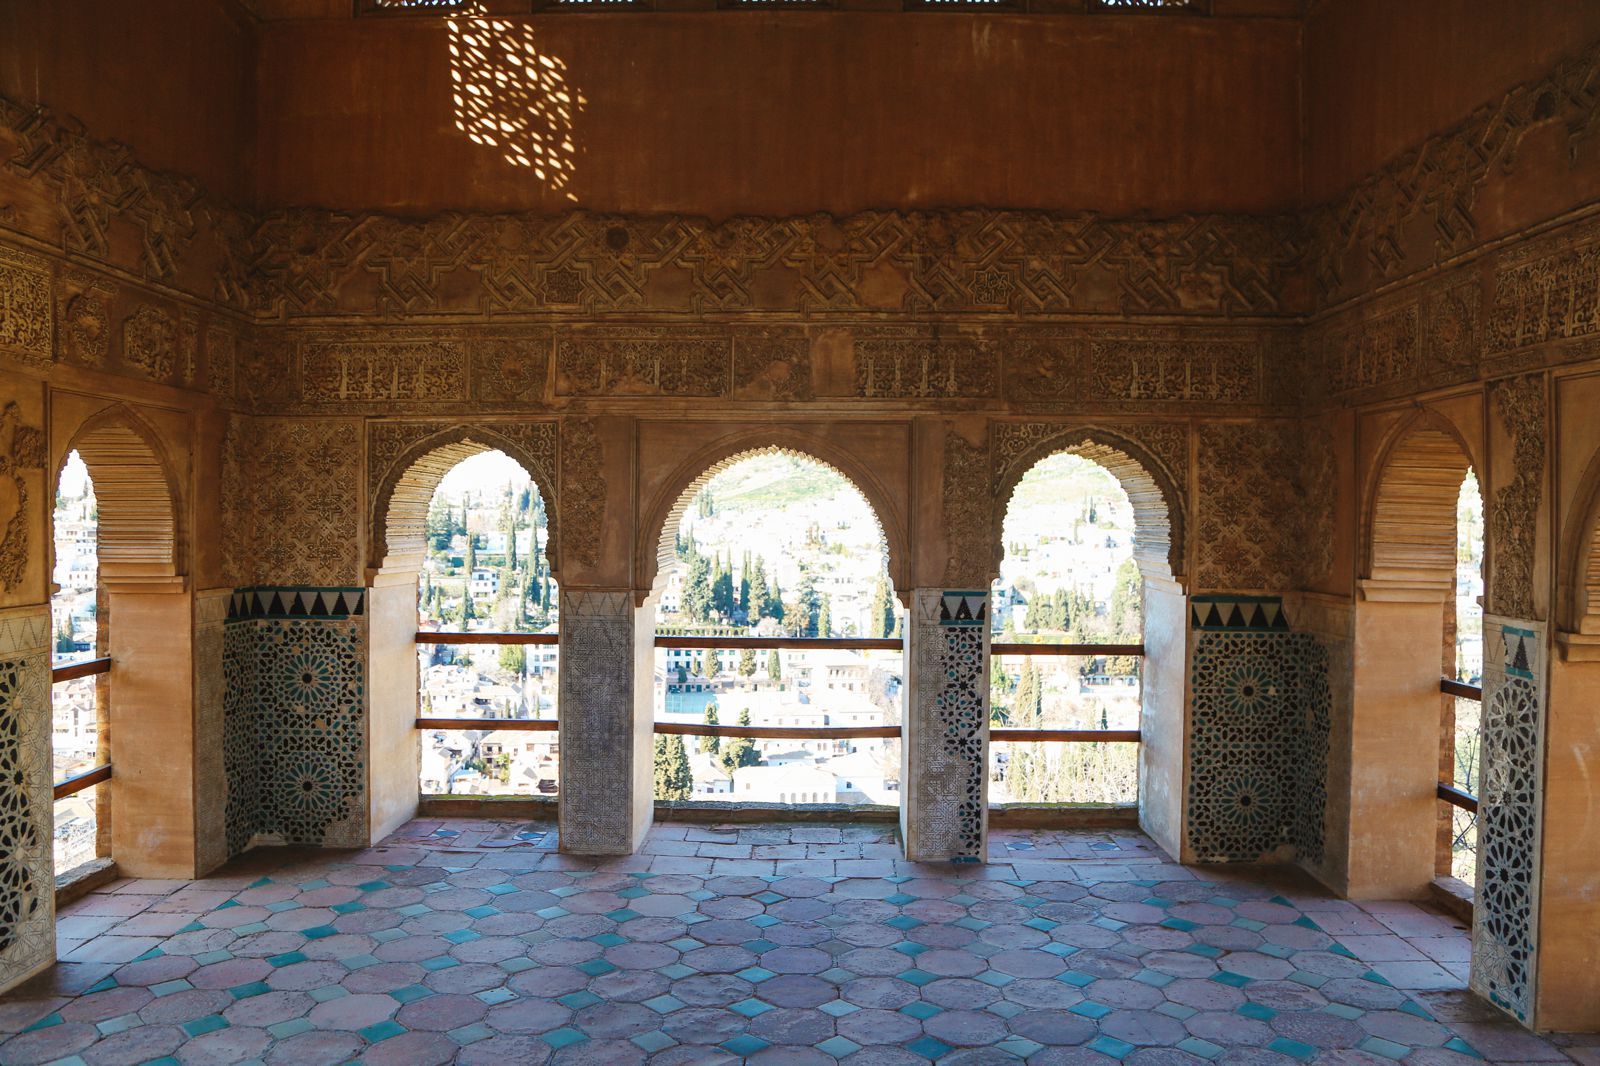 The Amazingly Intricate Alhambra Palace of Spain (86)